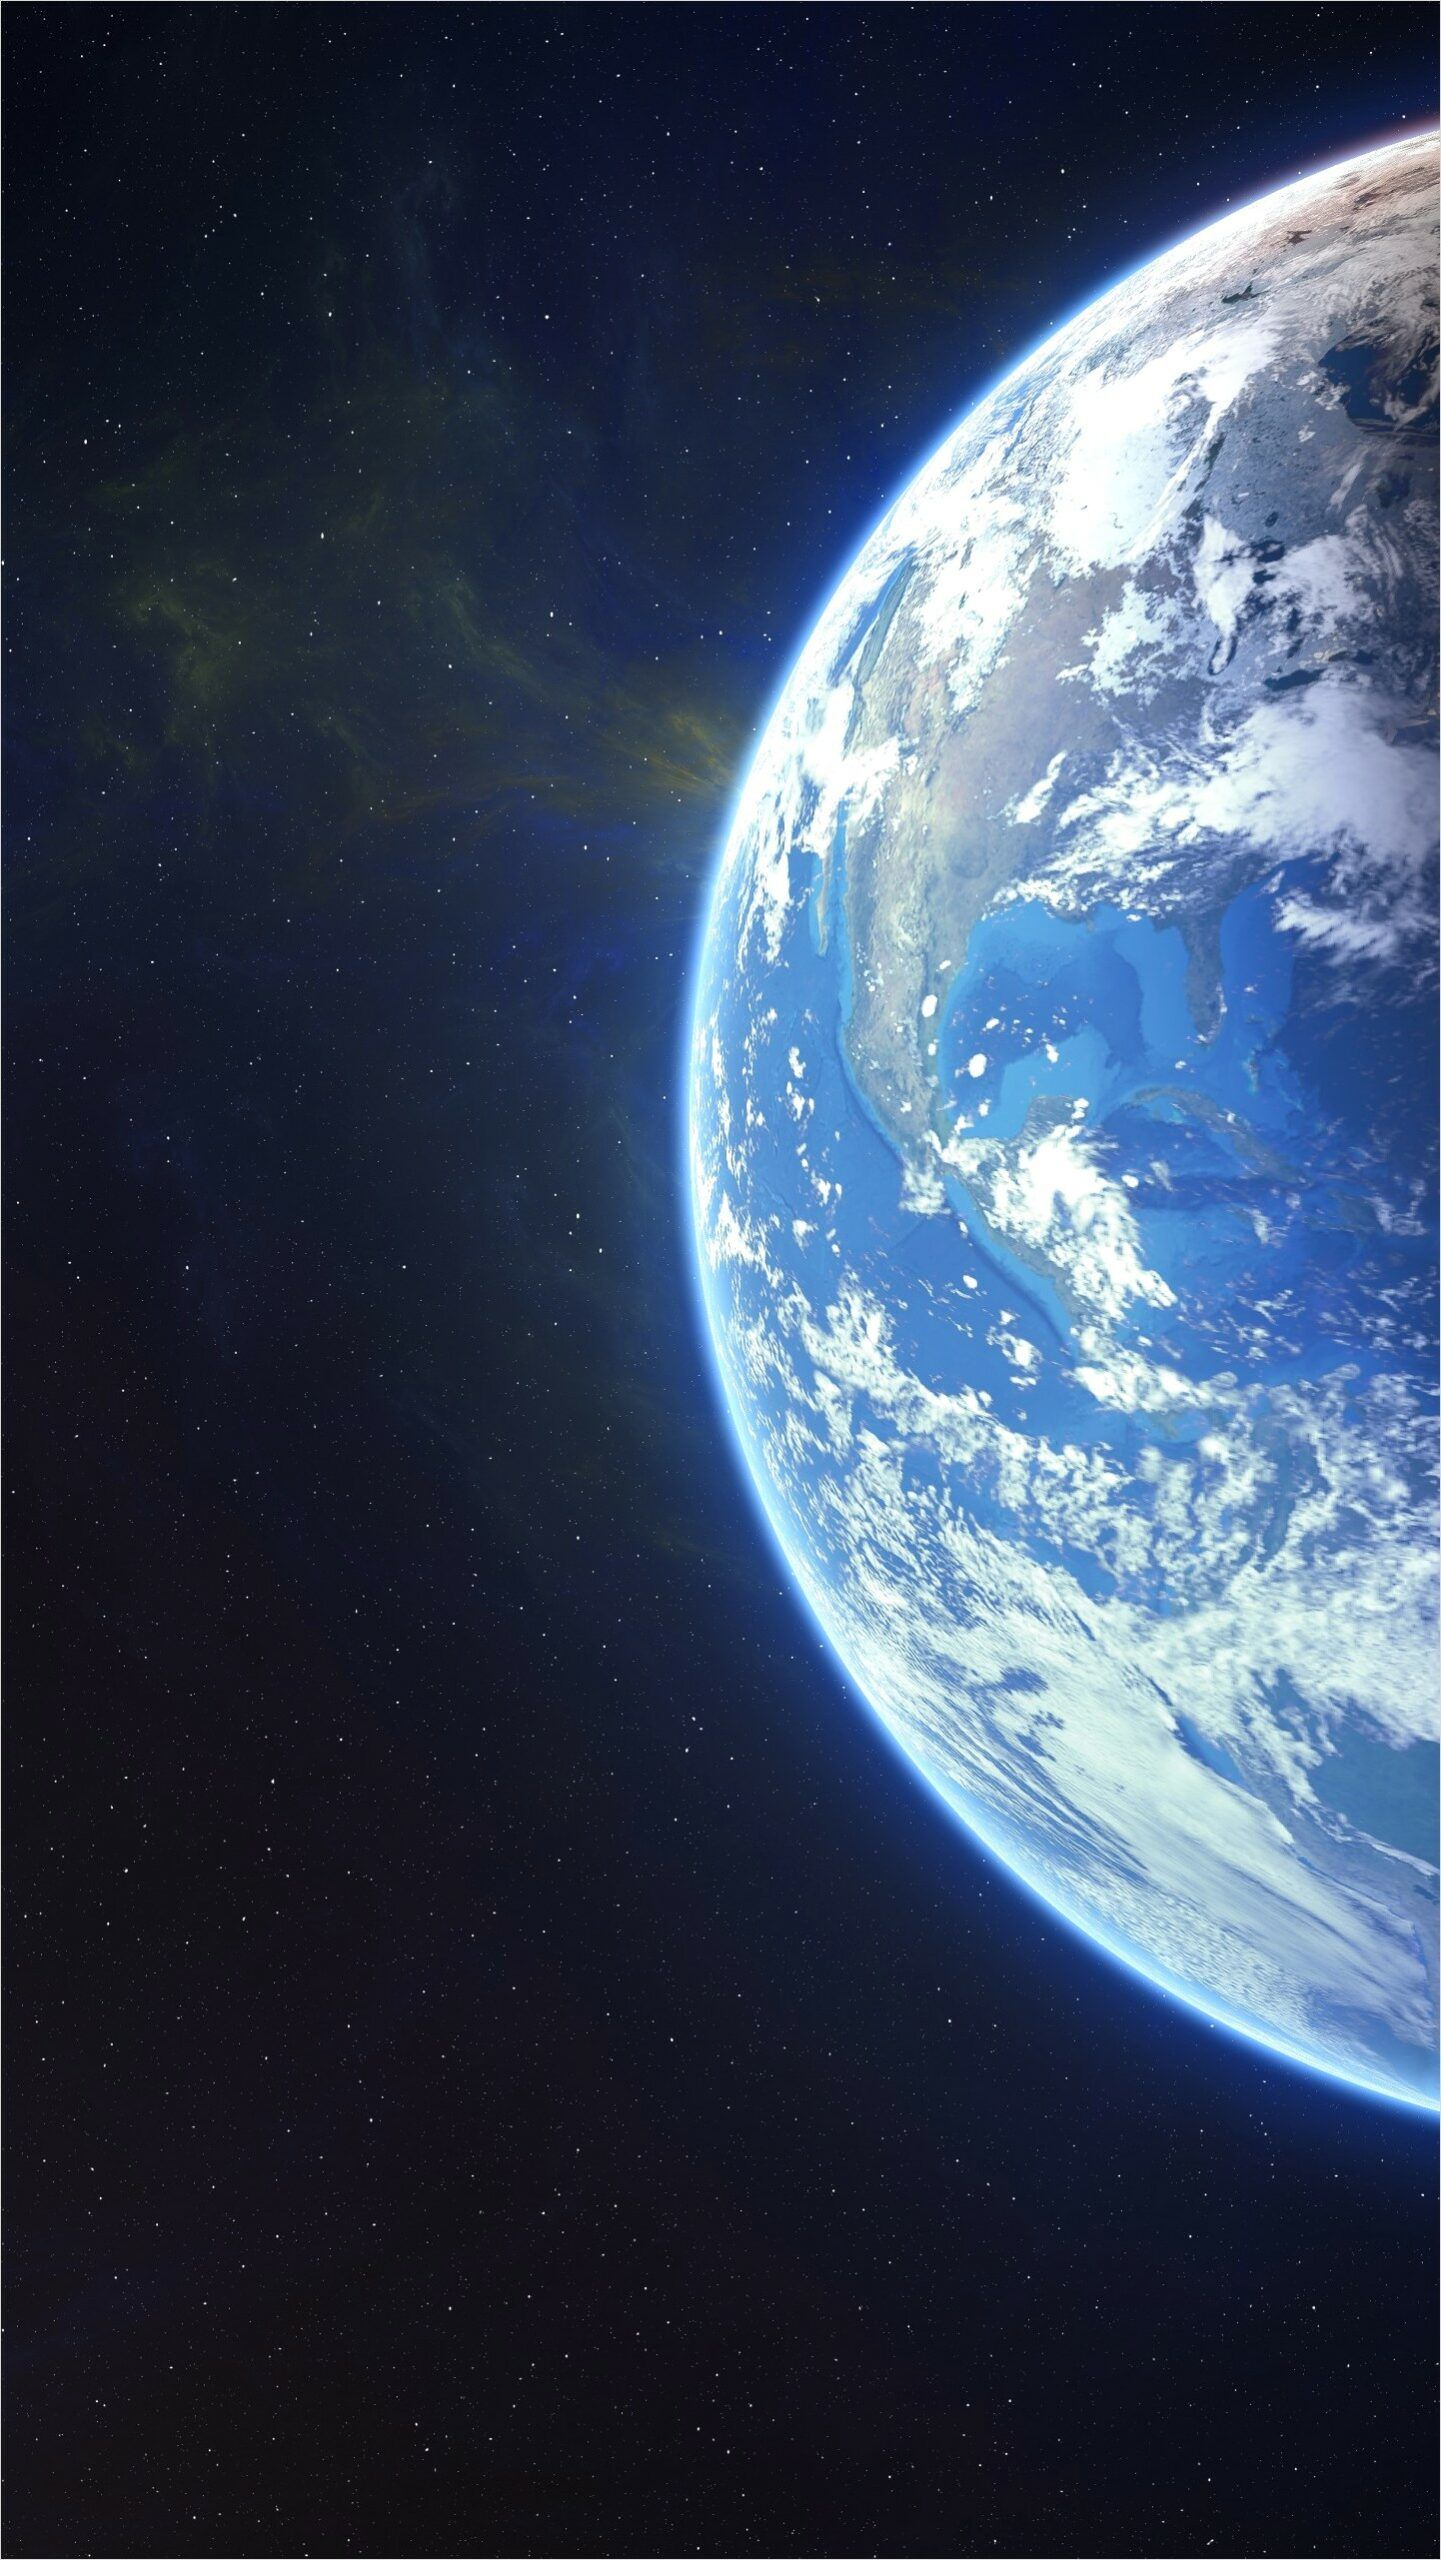 4k Deskop Wallpaper Loop Reddit Wallpaper Earth Wallpaper Space Space Art